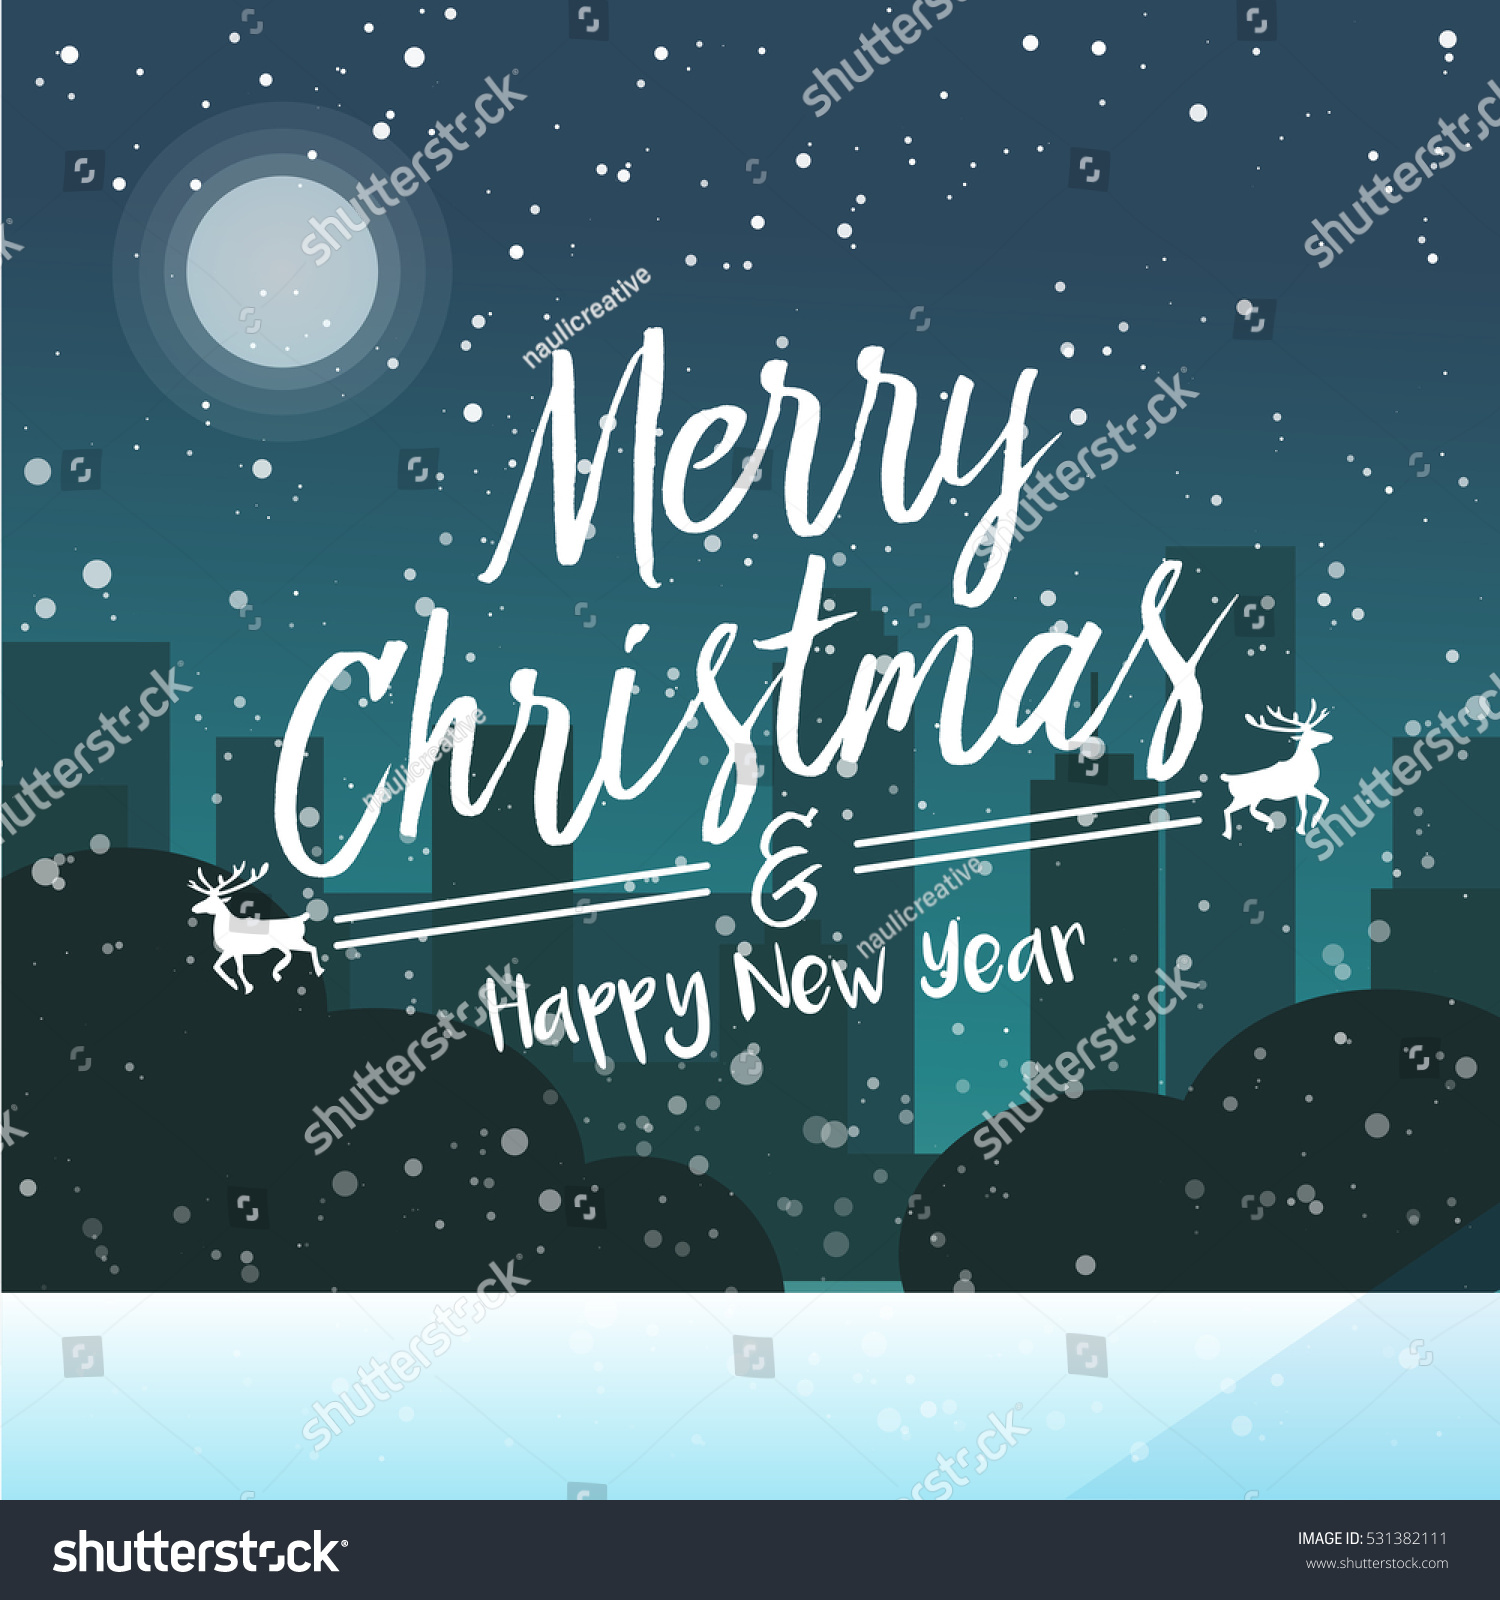 Square Merry Christmas Greetings Card Suitable Stock Vector Royalty